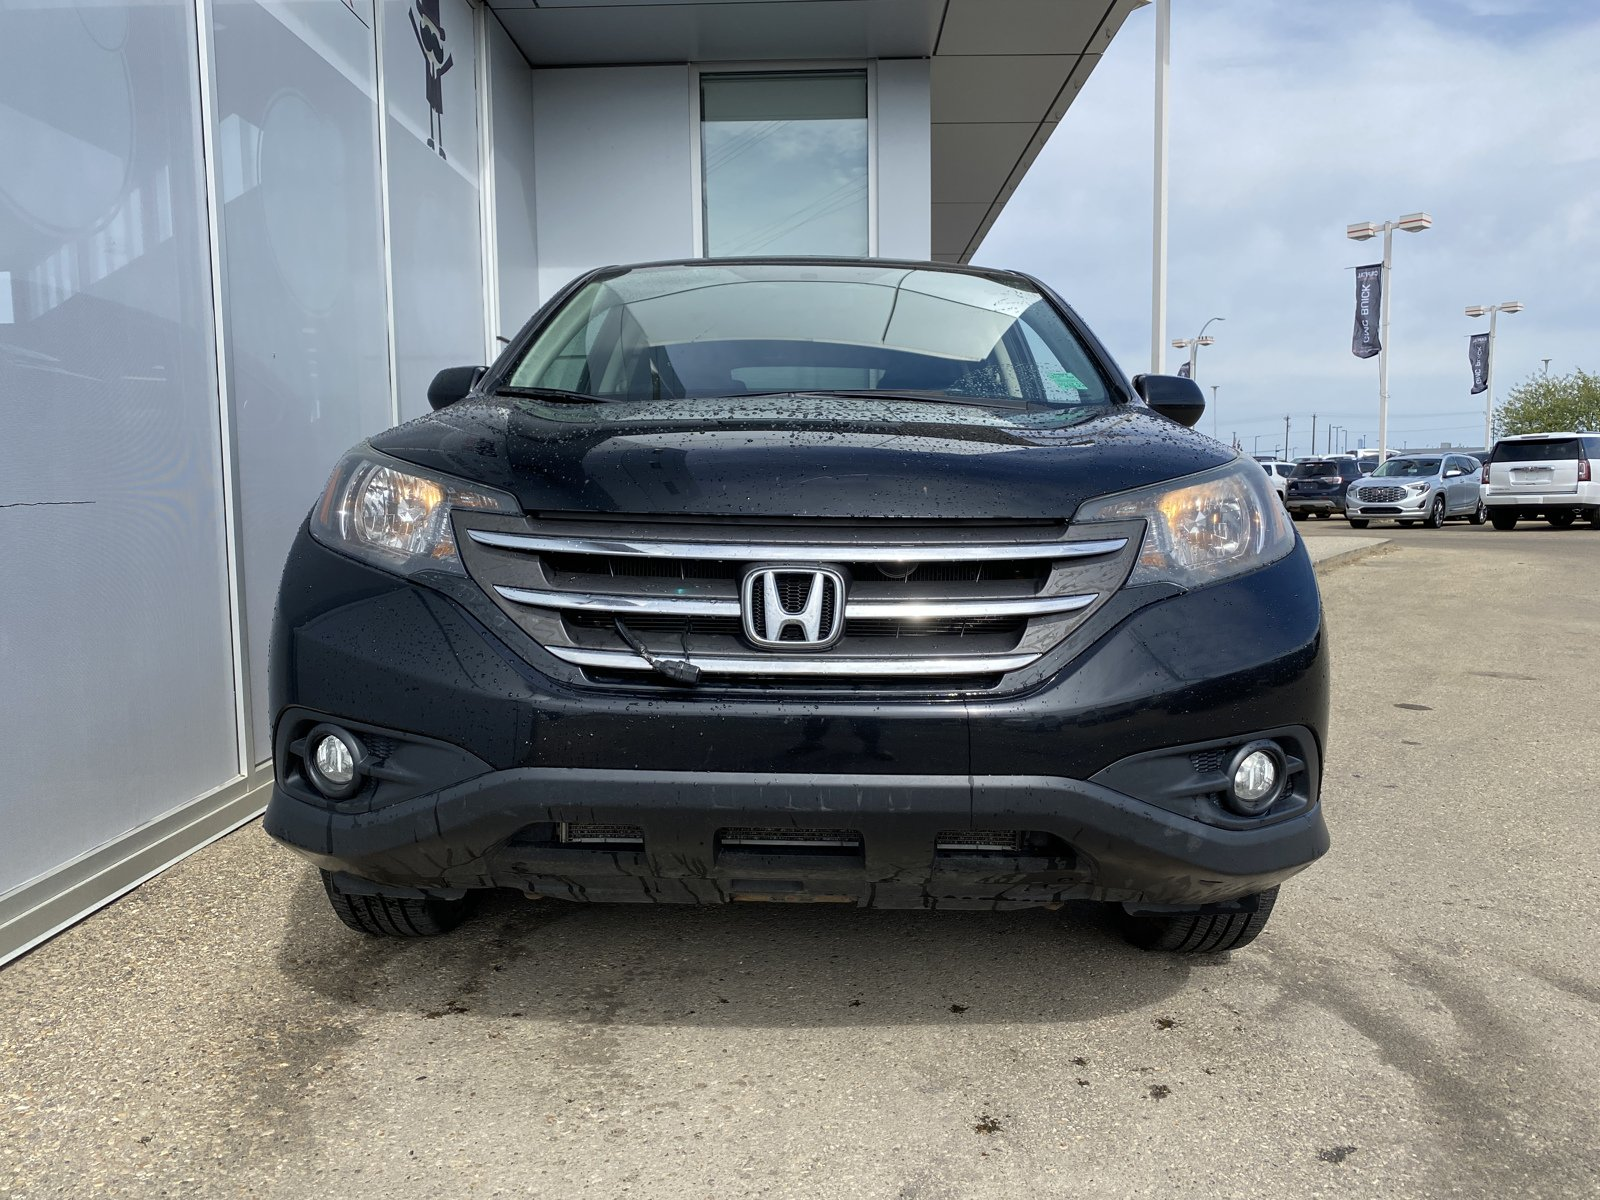 Certified Pre-Owned 2013 Honda CR-V EX-L AWD HEATED LEATHER SUNROOF BACKUP CAM NO ACCIDENTS